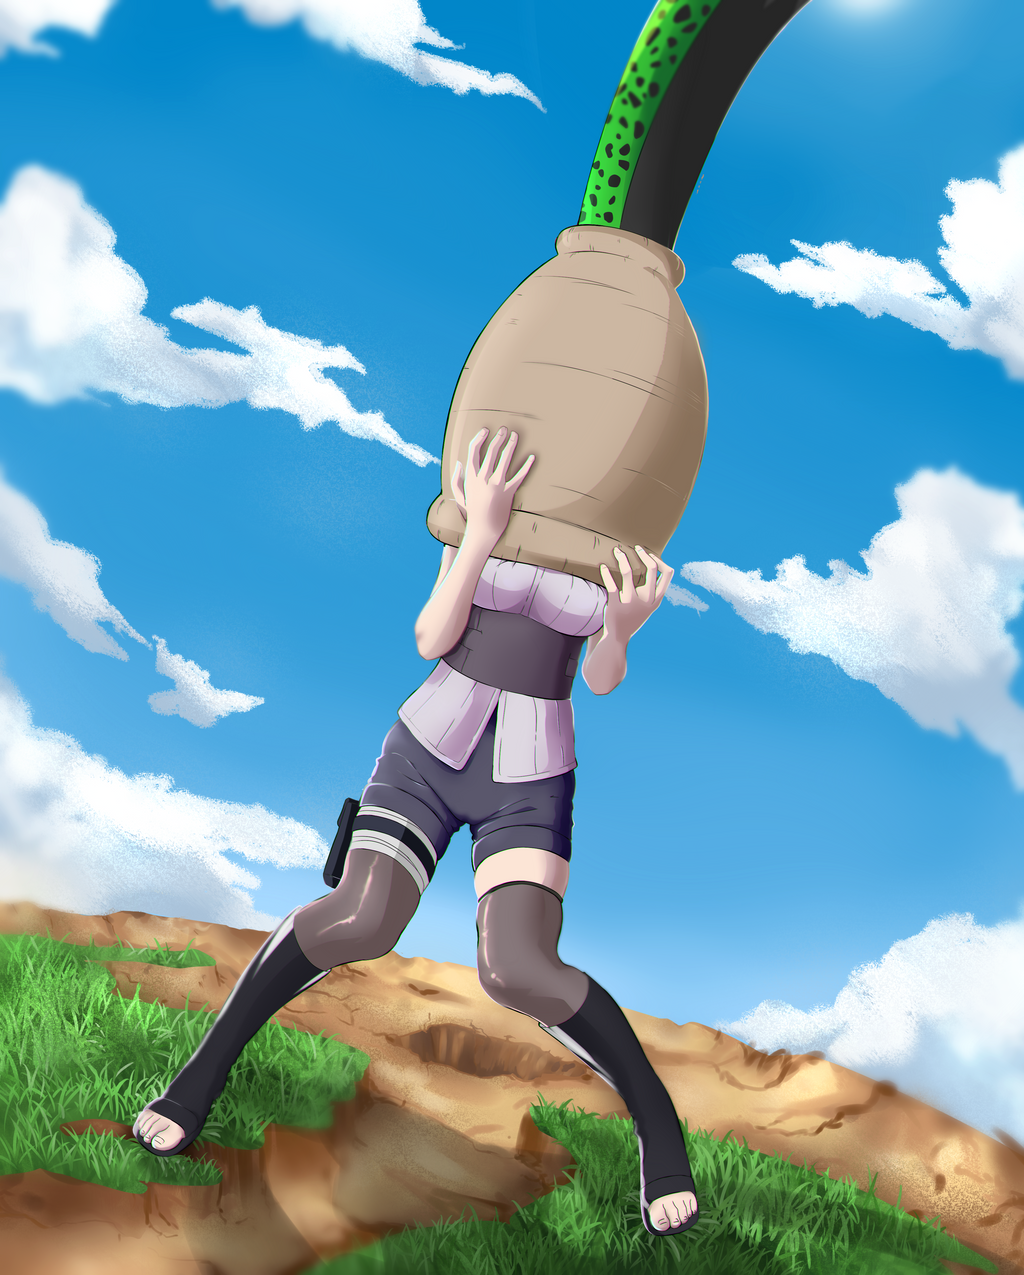 Android 18 And Tail Deviantart: Part 2 By Godvore On DeviantArt